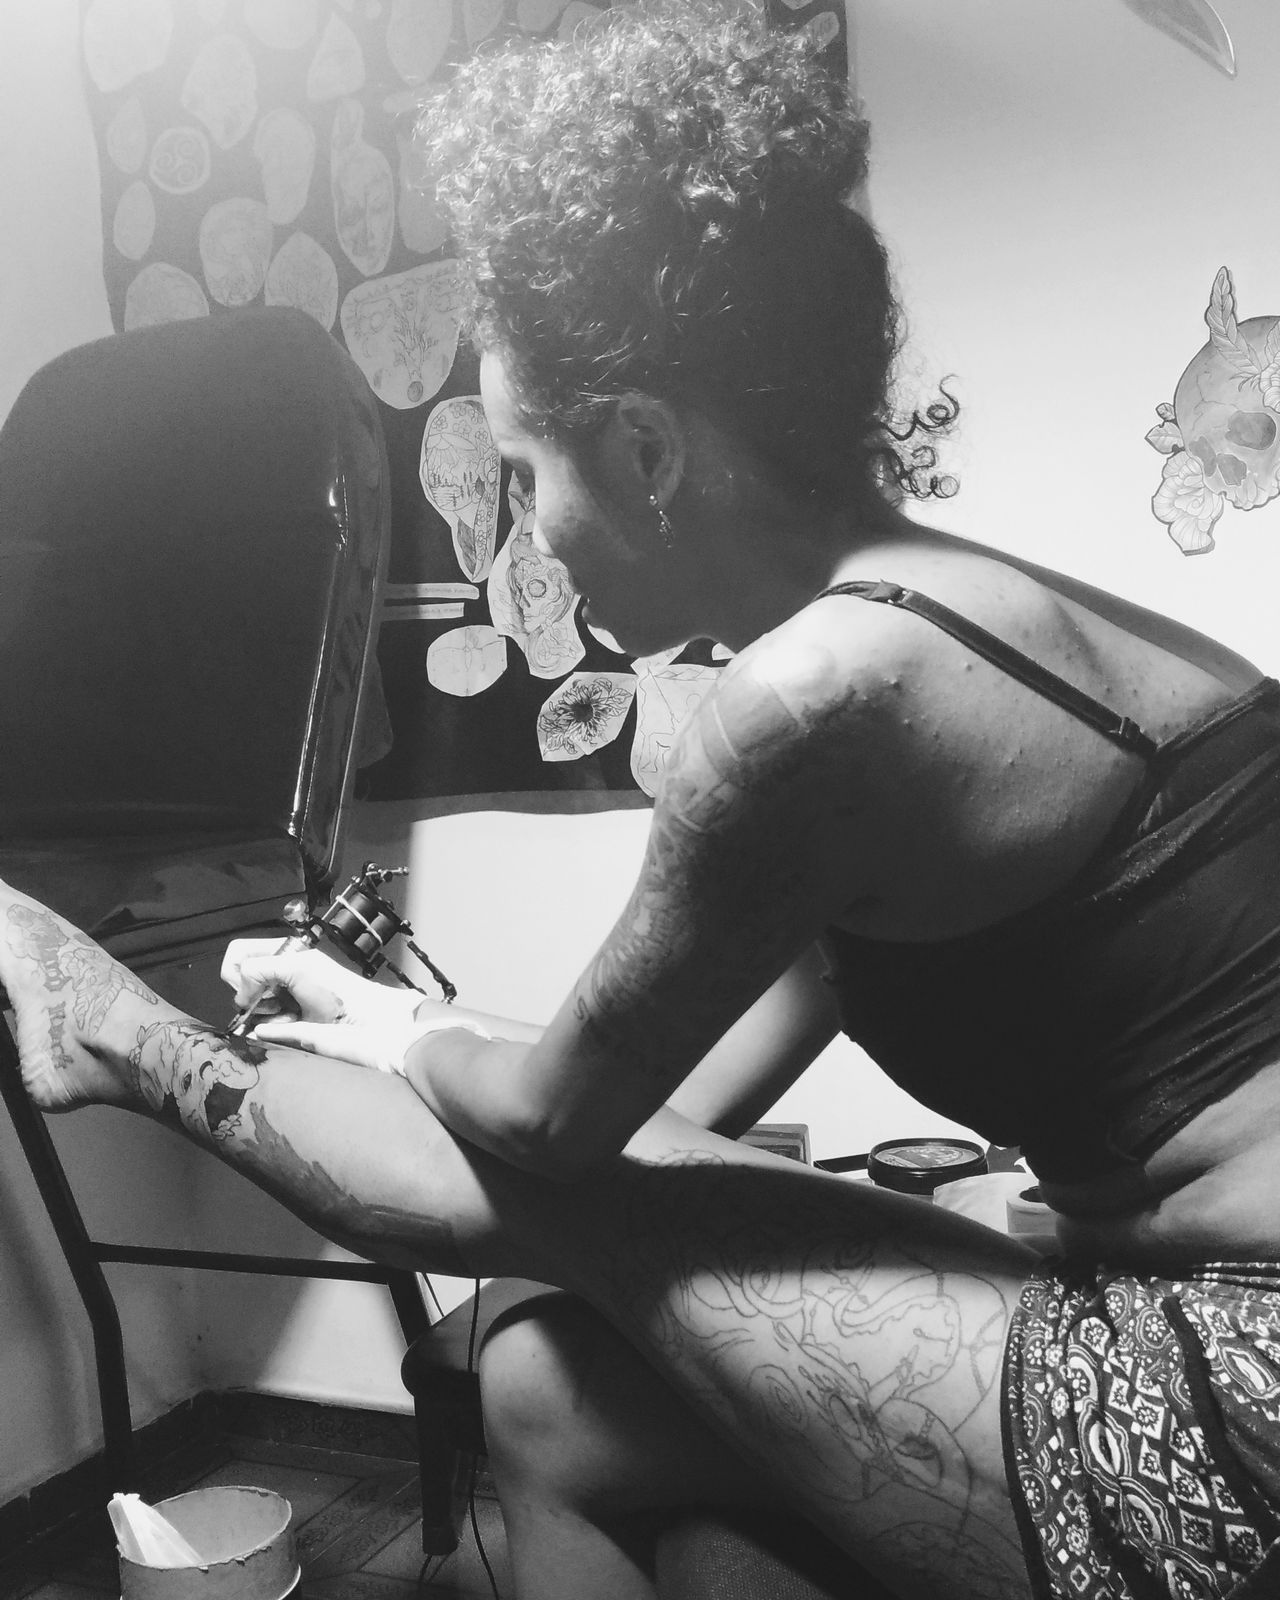 Art Is Everywhere One Person One Woman Only Arts Culture And Entertainment Young Women Tattoo Life Tattoo Tattooart Tattooing Tatuadoras tatuagem brazilianTatuadora Negra Negrabrasileira Investing In Quality Of Life